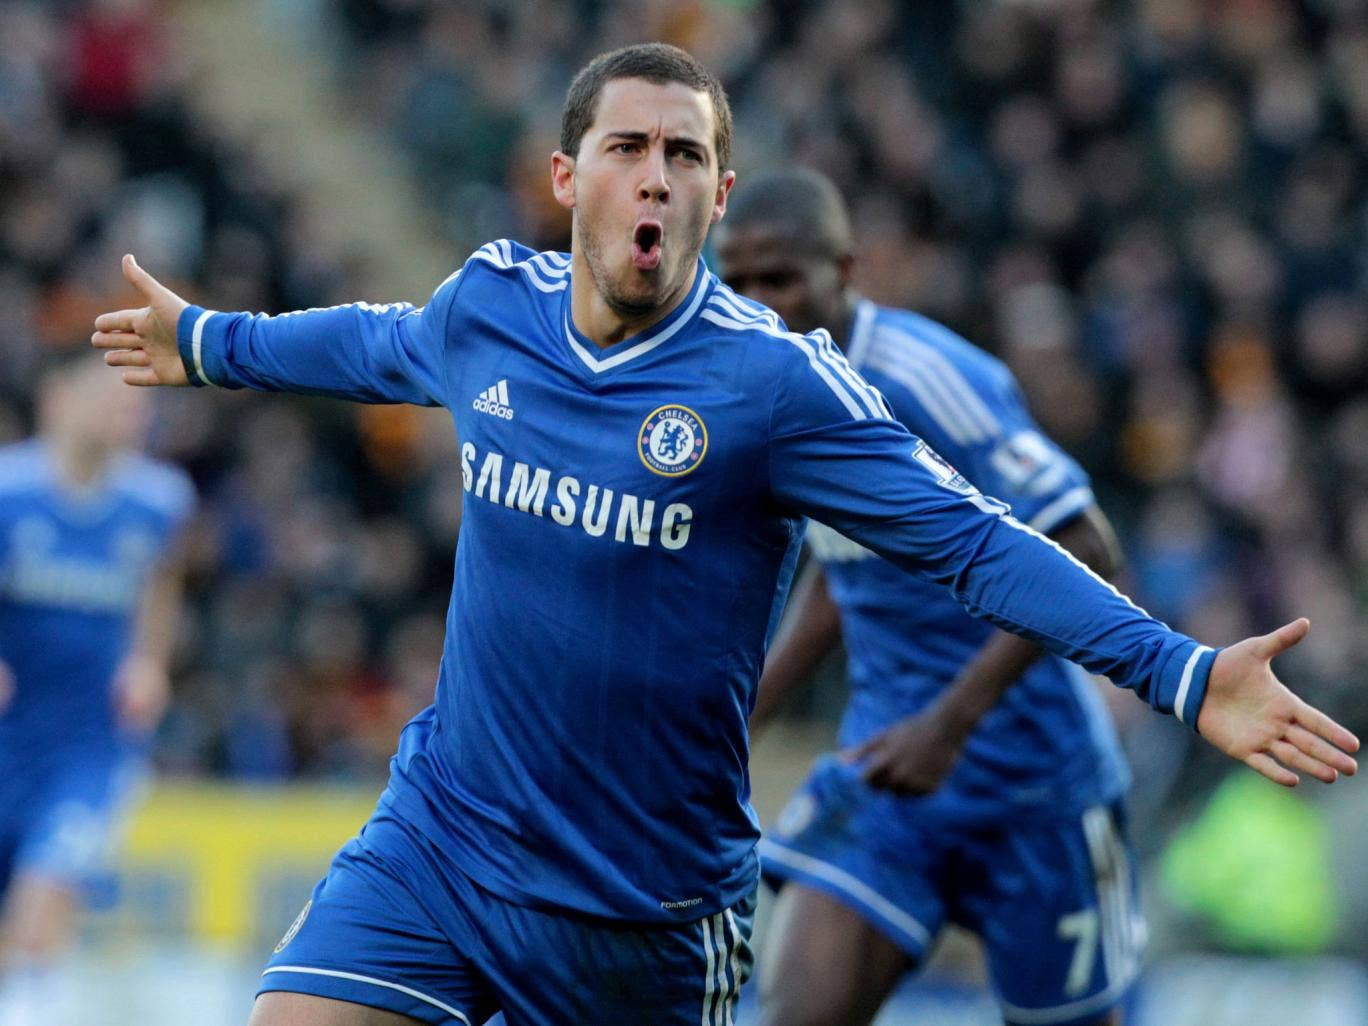 Eden Hazard celebrates after scoring a brilliant opener in Chelsea's 2-0 win over Hull